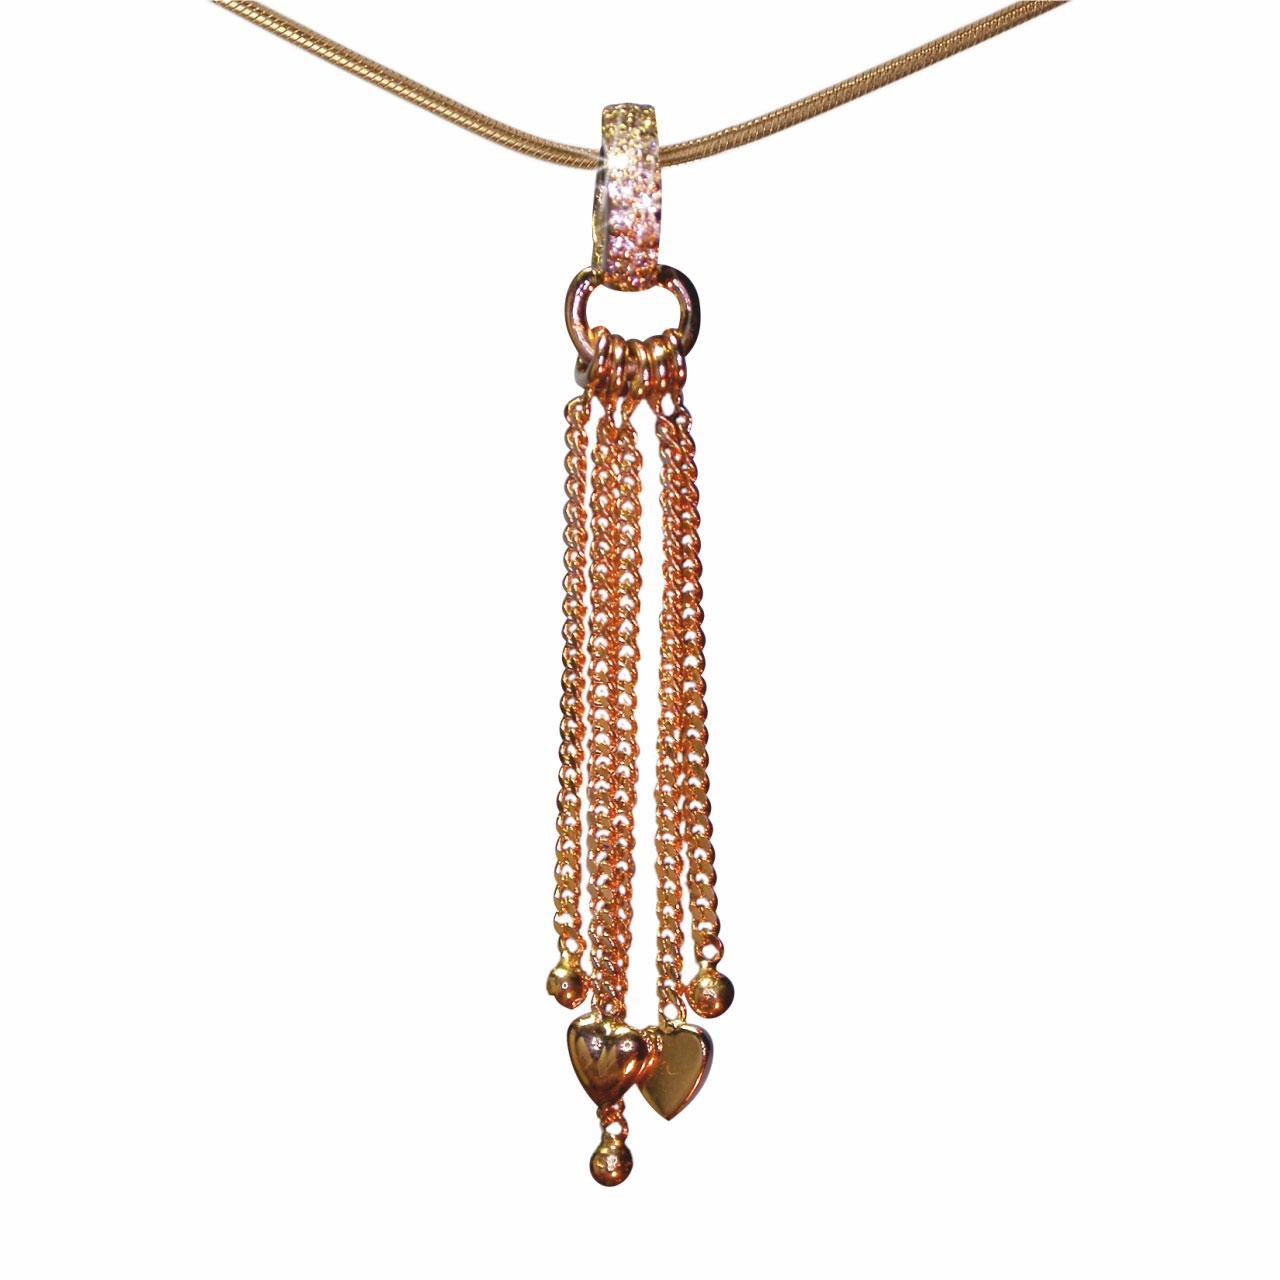 Gold Chains For Sale >> Cz Rose Gold Chain Pendant Bargain Sale